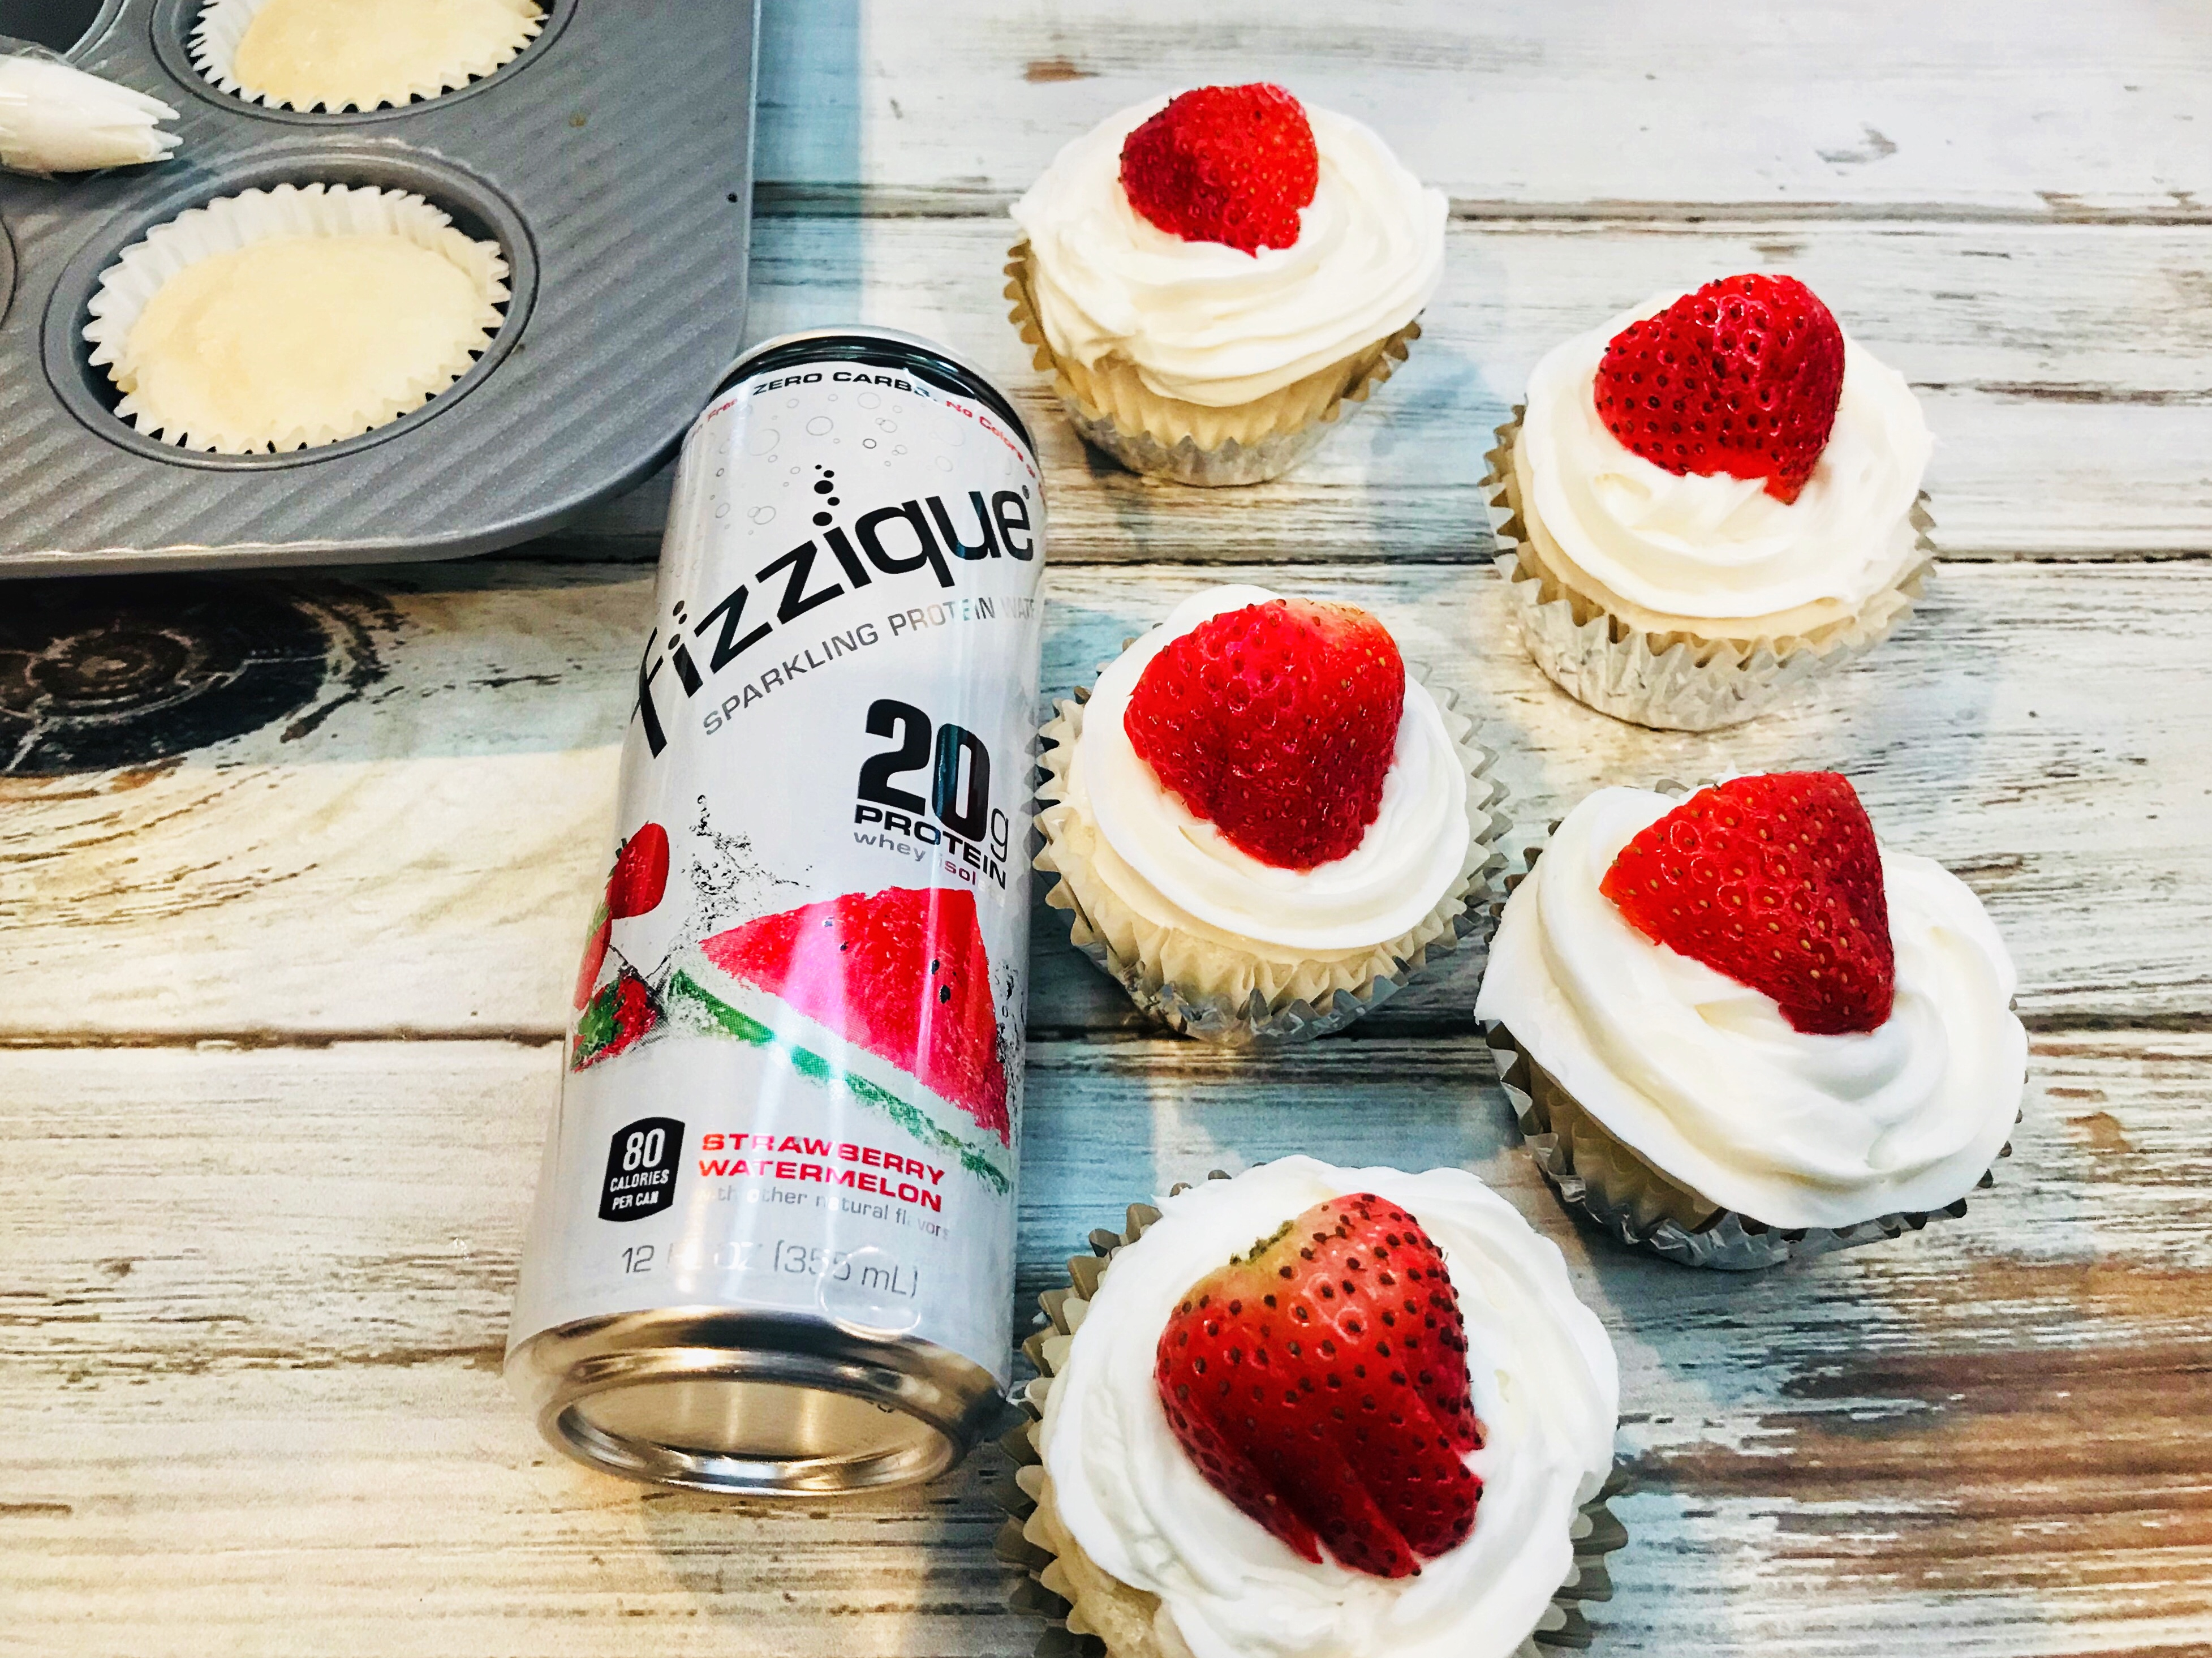 How to Make Protein Cupcakes, Protein Cupcake Recipe, Berry Protein Cupcakes